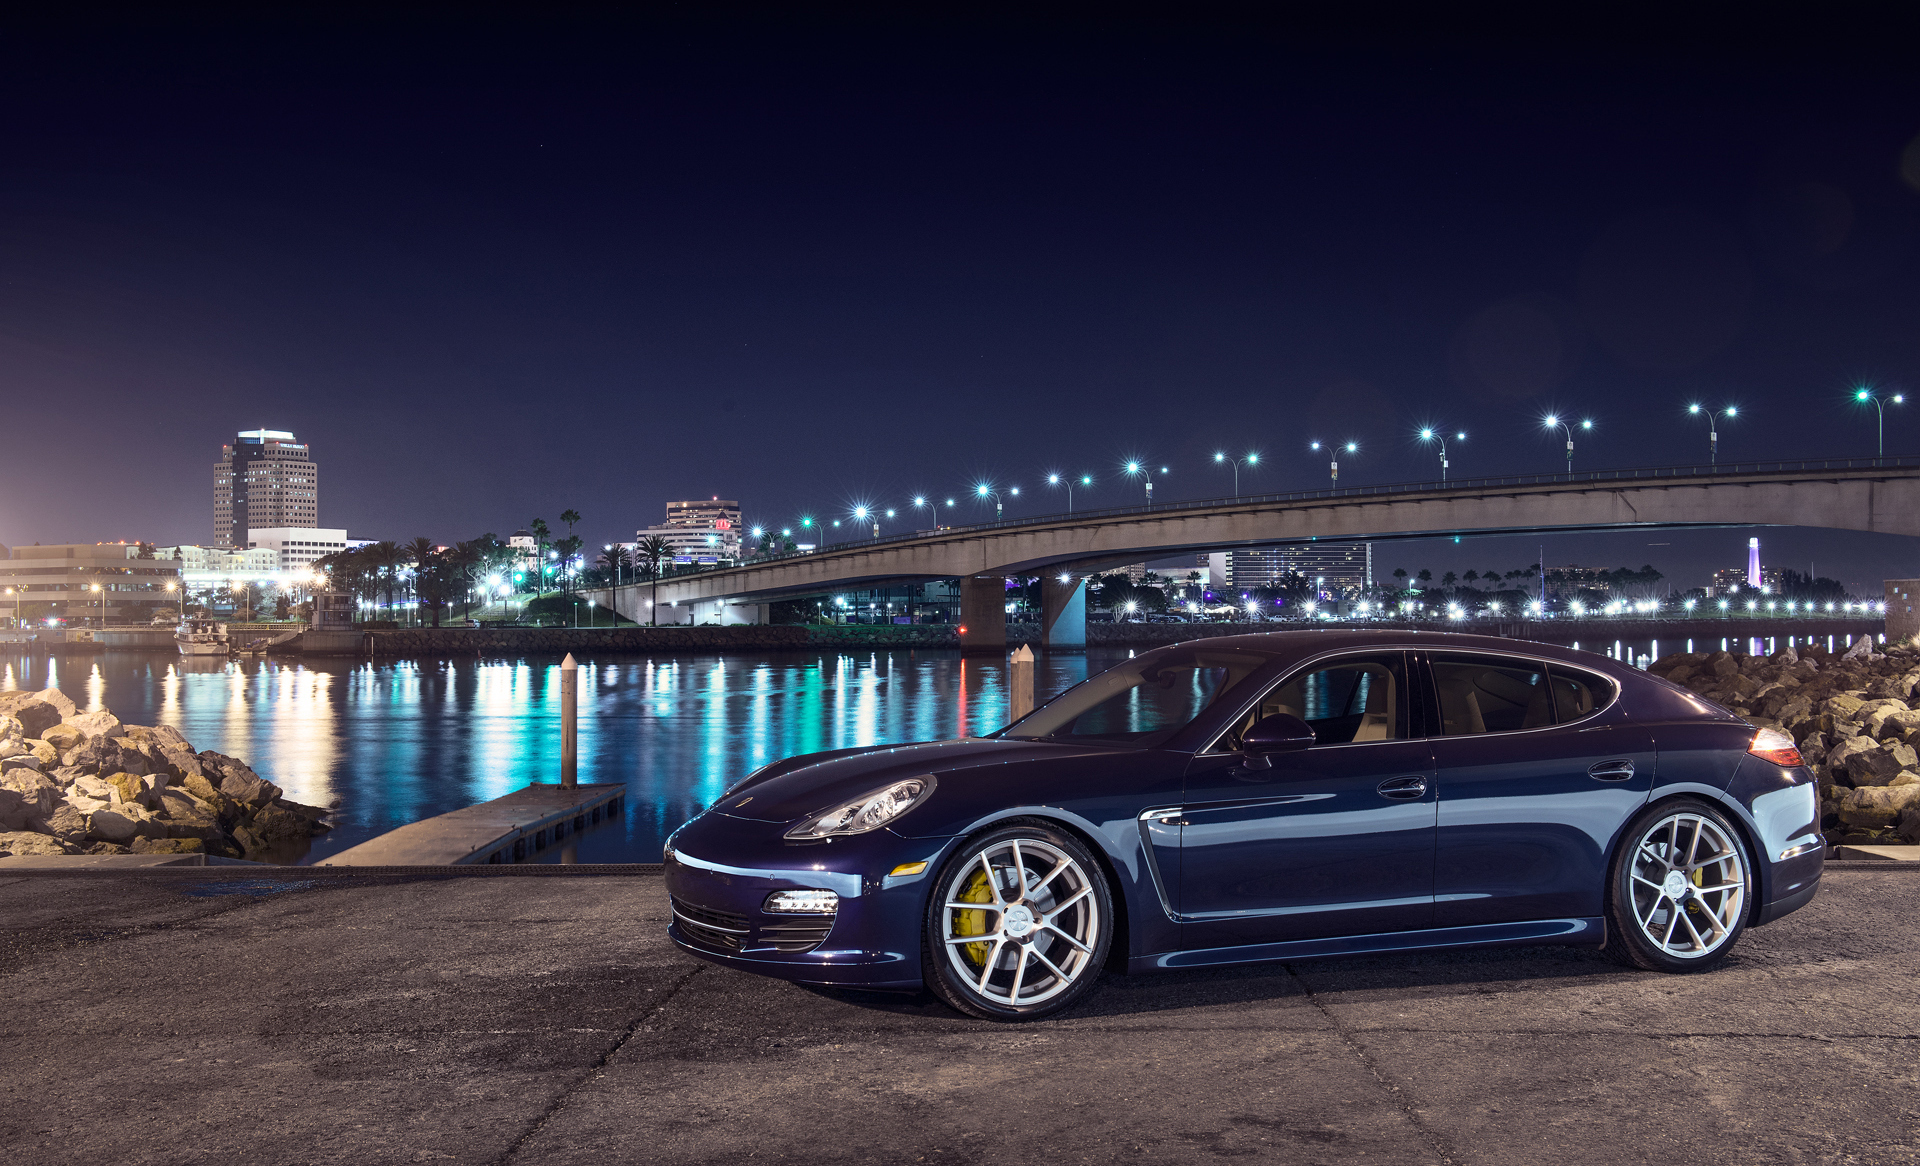 84002 Screensavers and Wallpapers Porsche for phone. Download Porsche, Night, Cars, City, Side View, Panamera S pictures for free